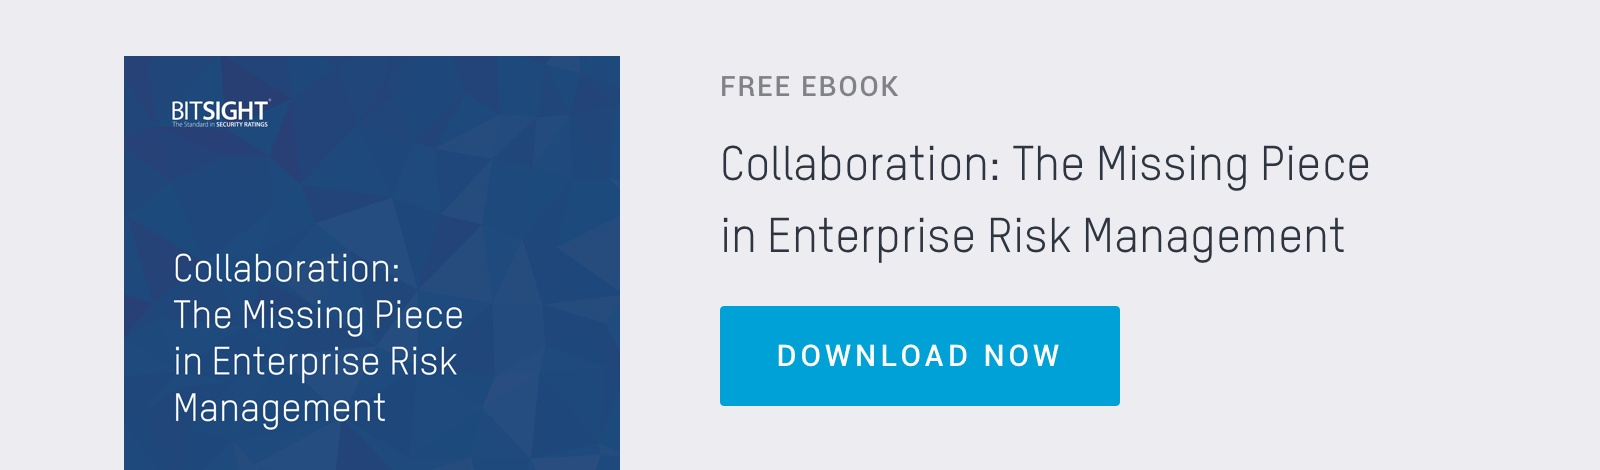 Download The Missing Piece in Enterprise Risk Management